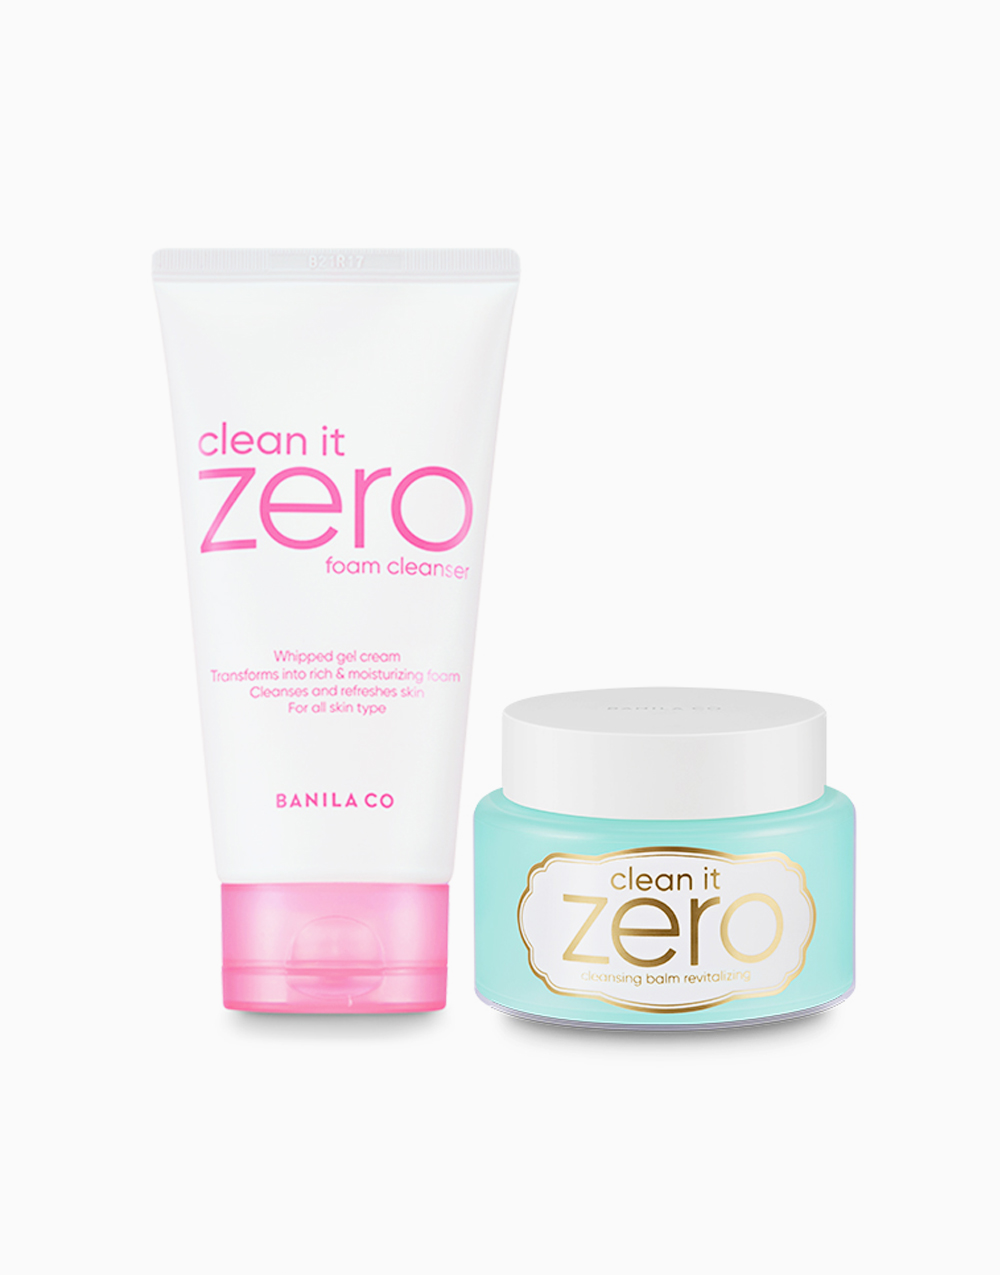 Clean It Zero Double Cleansing Duo Macaron Edition (Revitalizing) by Banila Co.